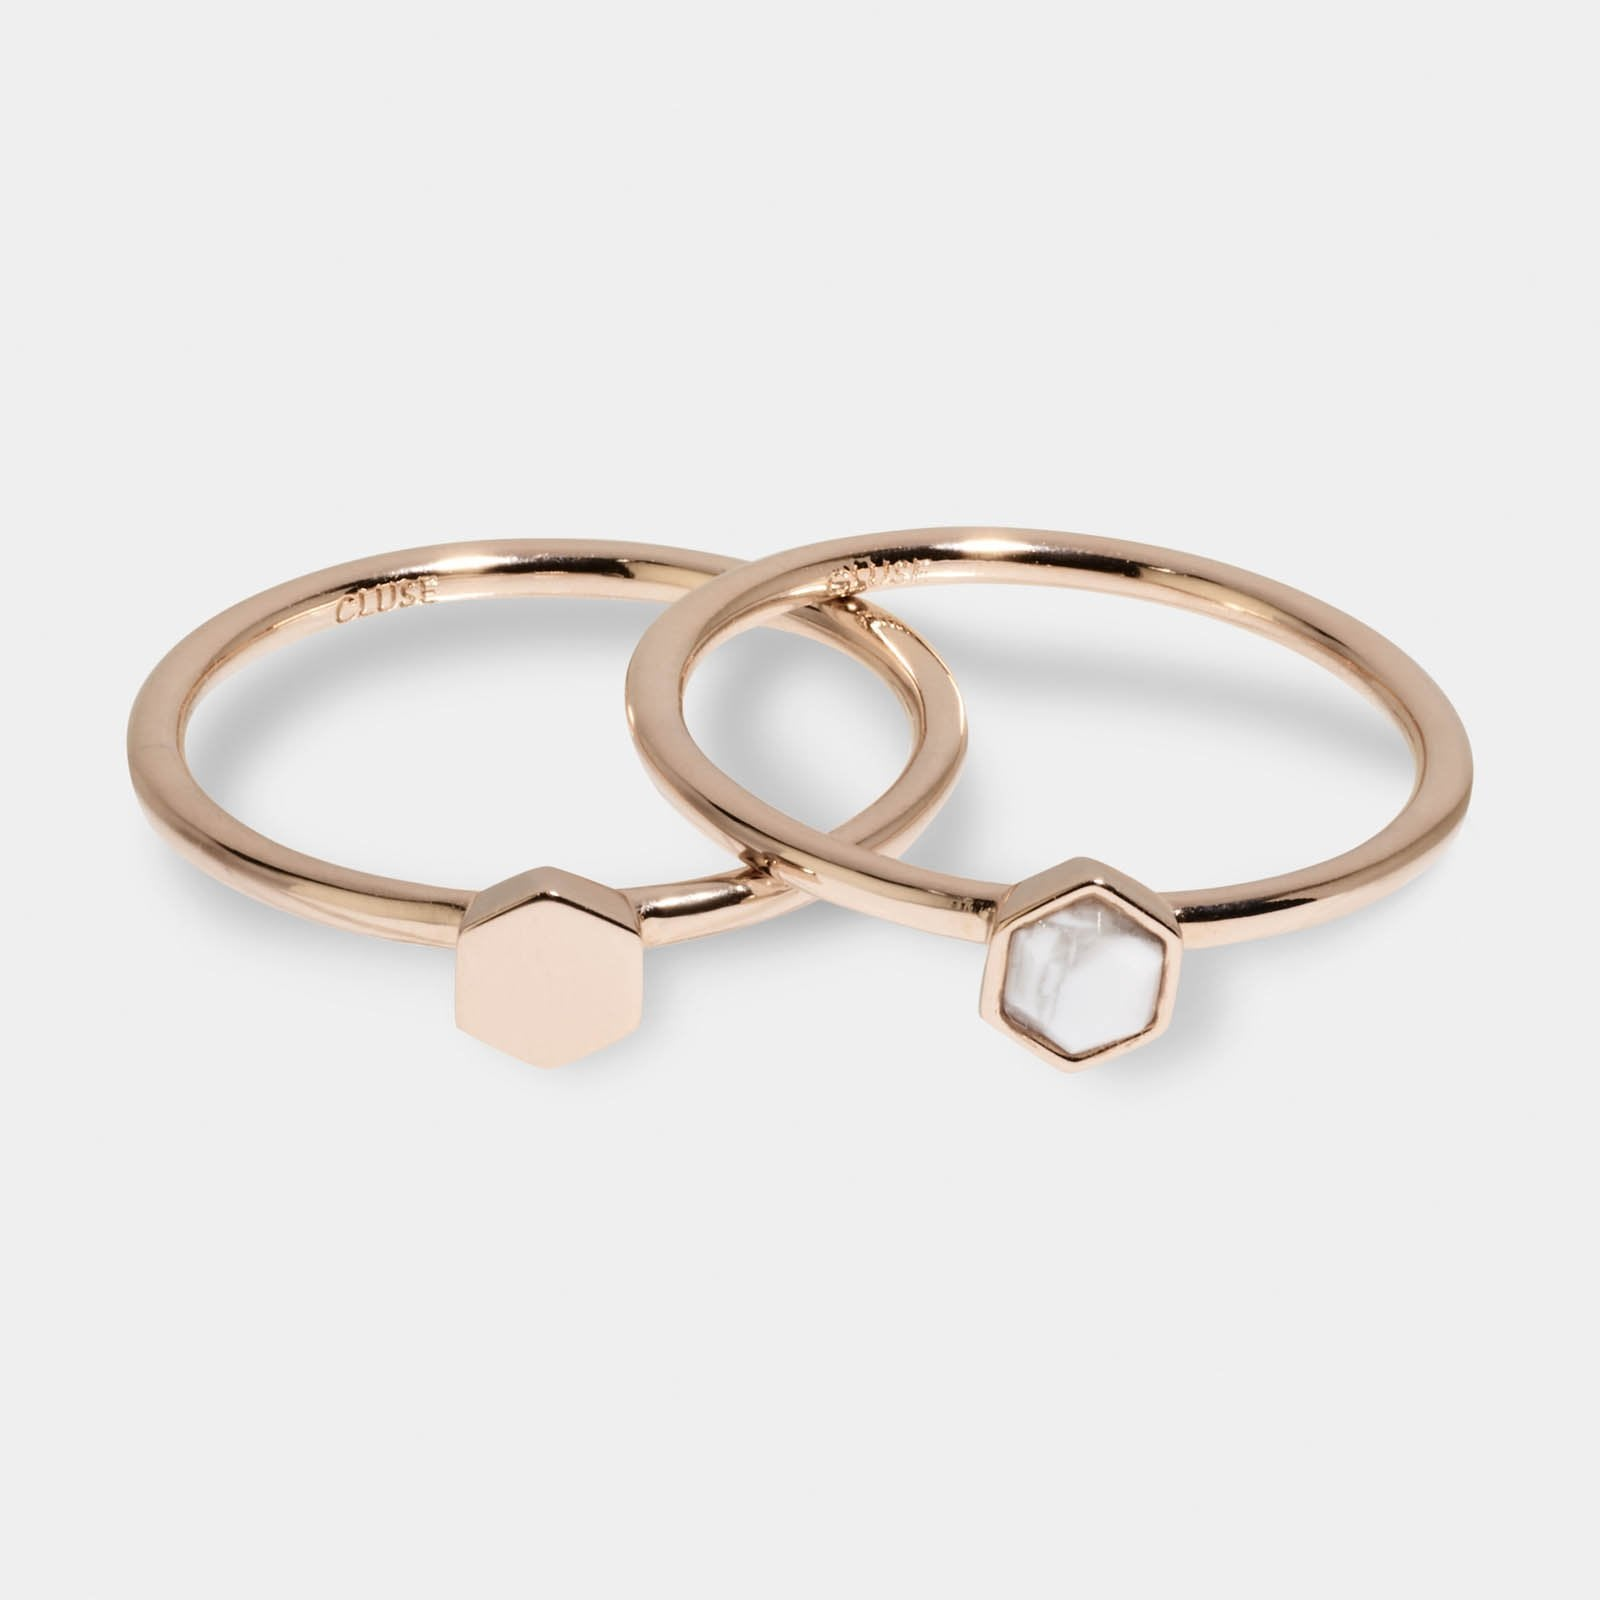 CLUSE Idylle Rose Gold Solid And Marble Hexagon Ring Set CLJ40001-54 - set van ringen maat 54